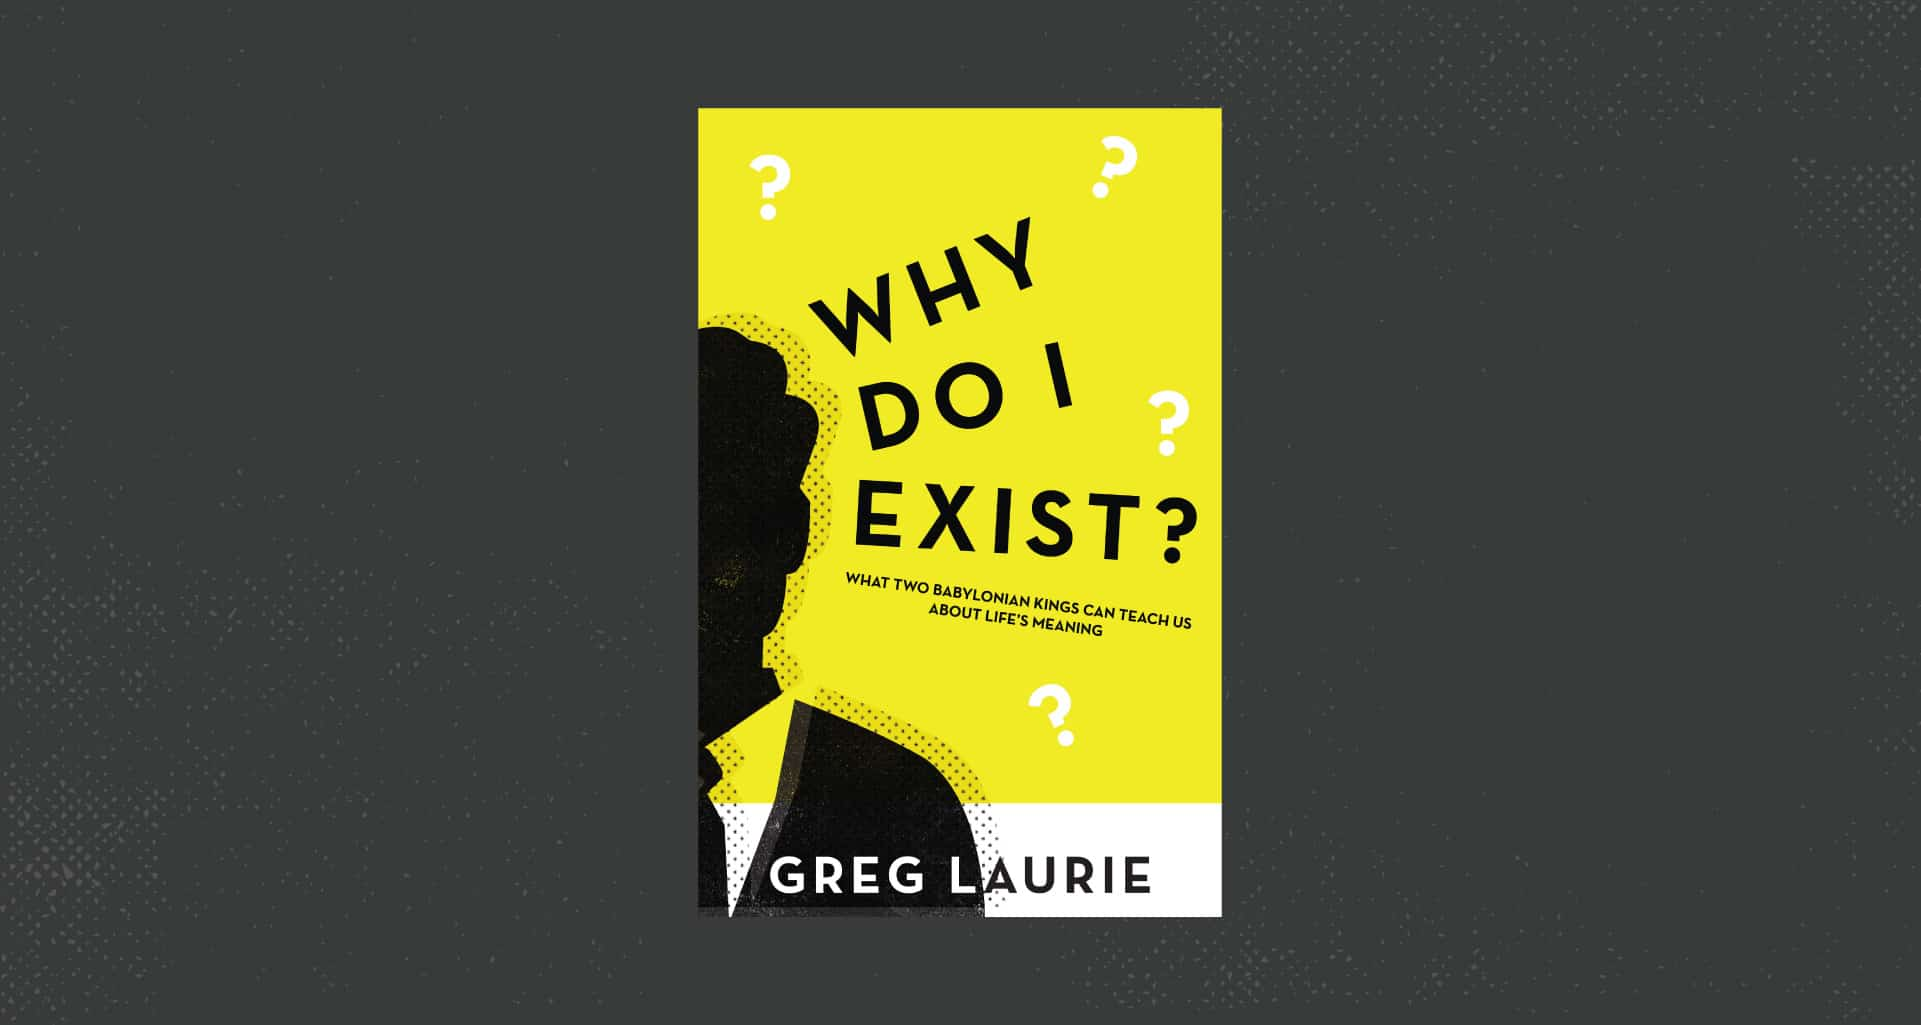 why do i exist book cover with man on cover greg laurie e book